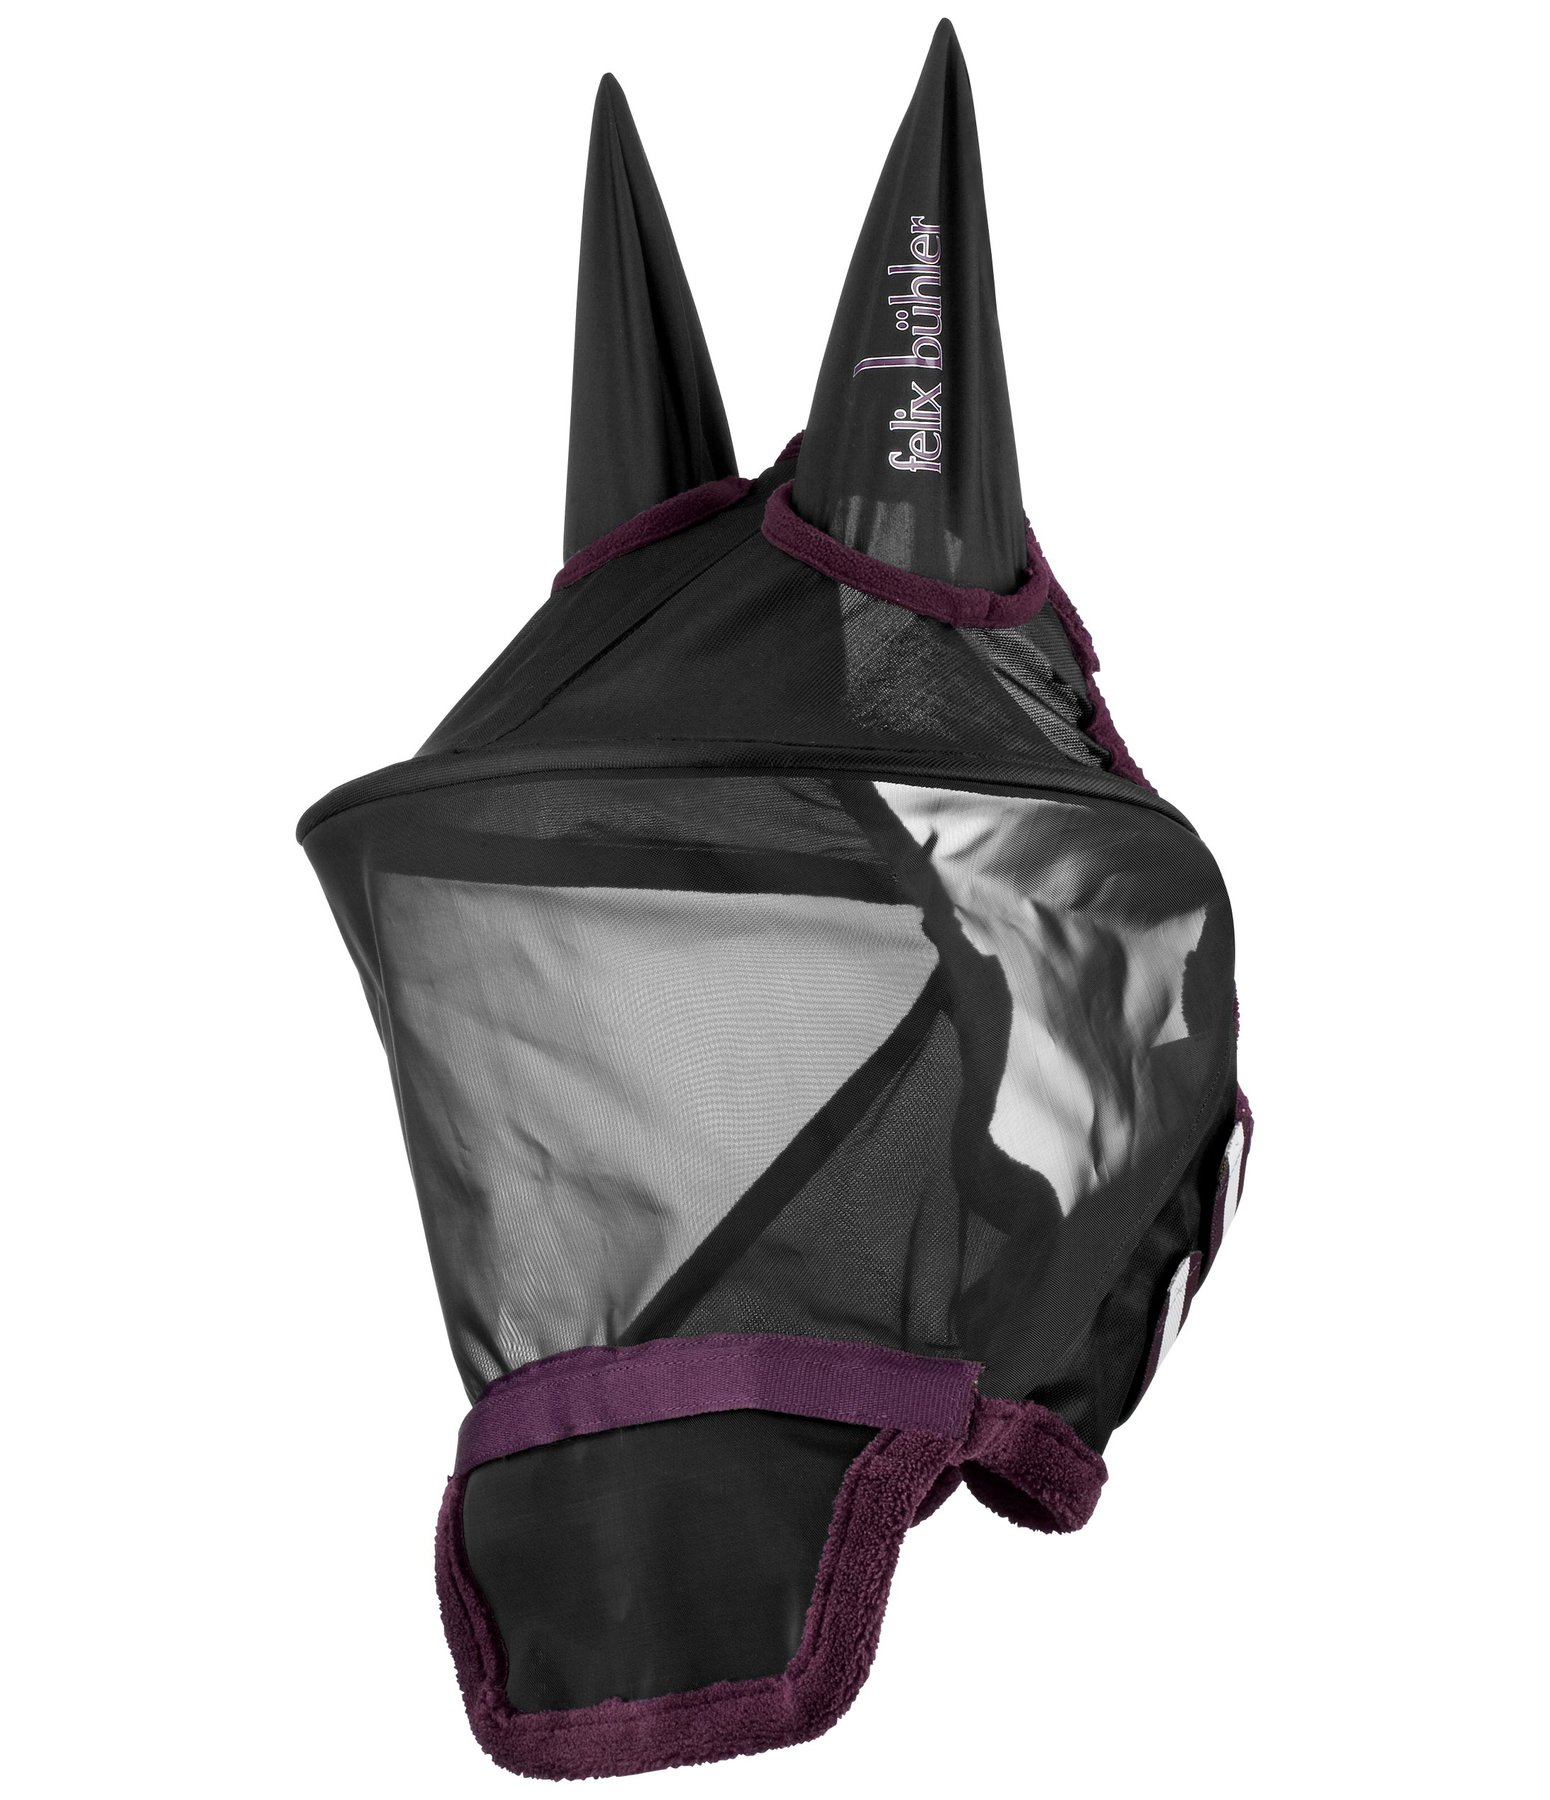 Fly Mask Fly Free II, UV 60+